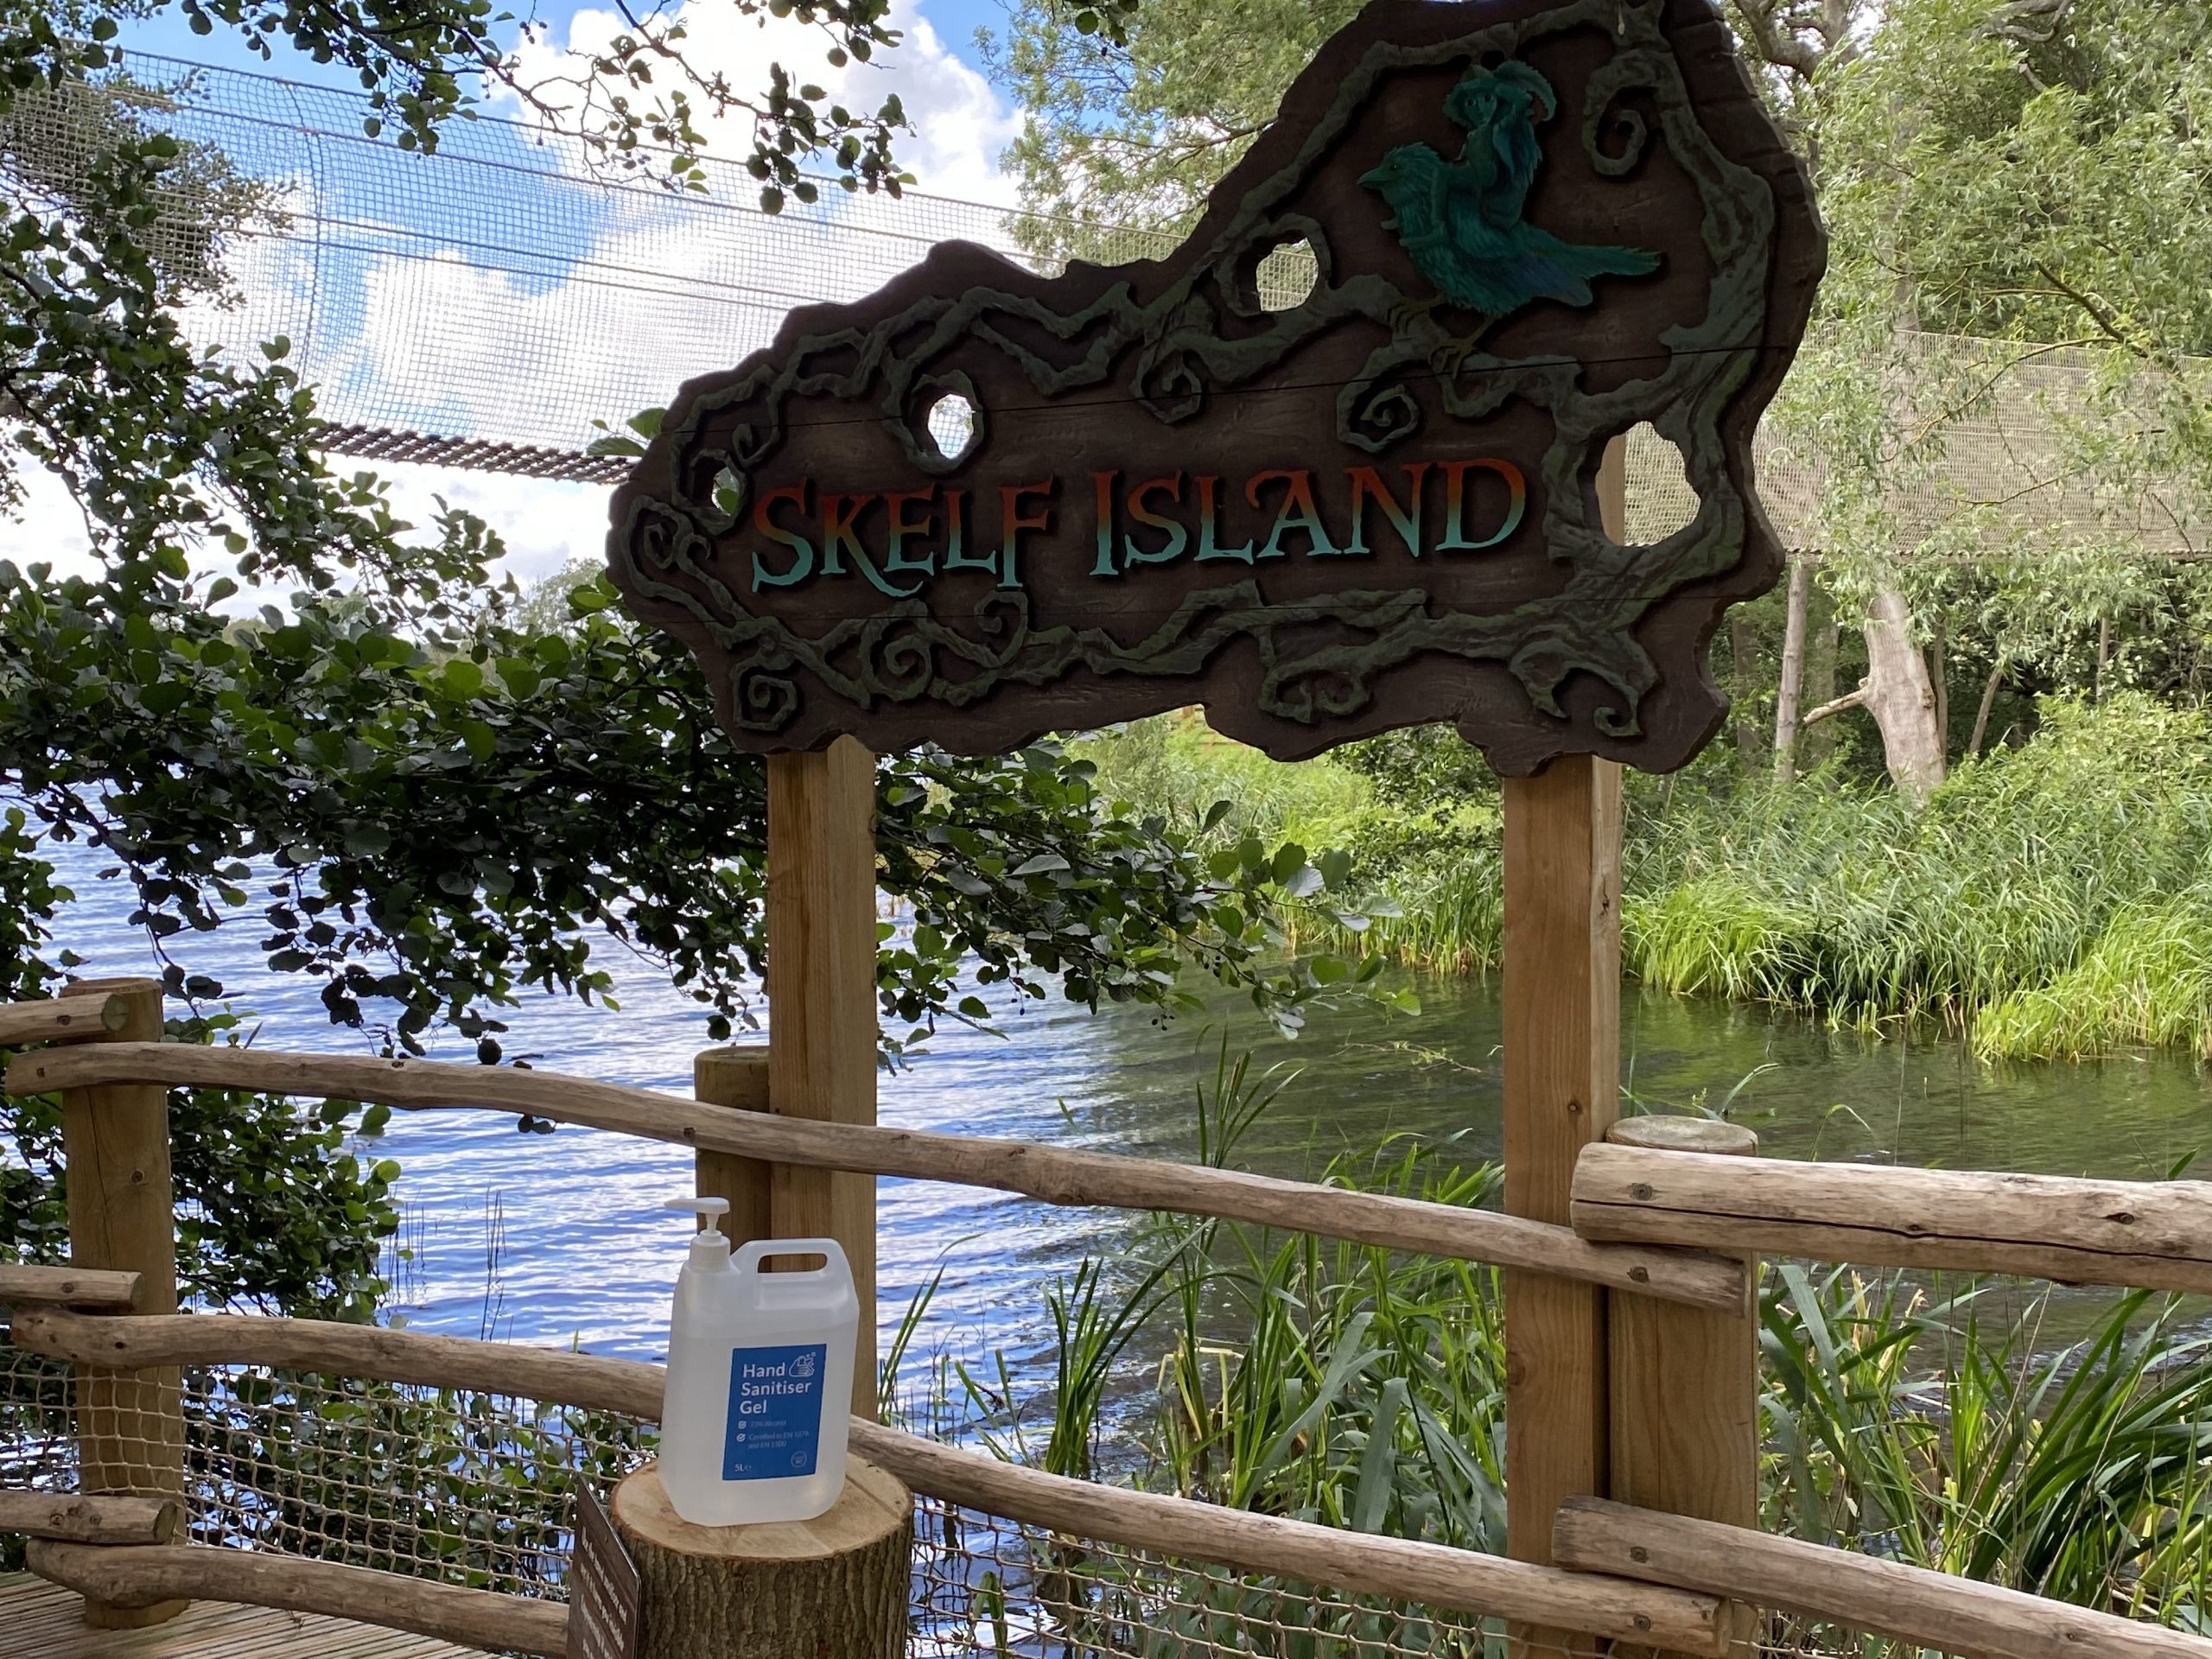 Skelf island sign with some  hand sanitiser below